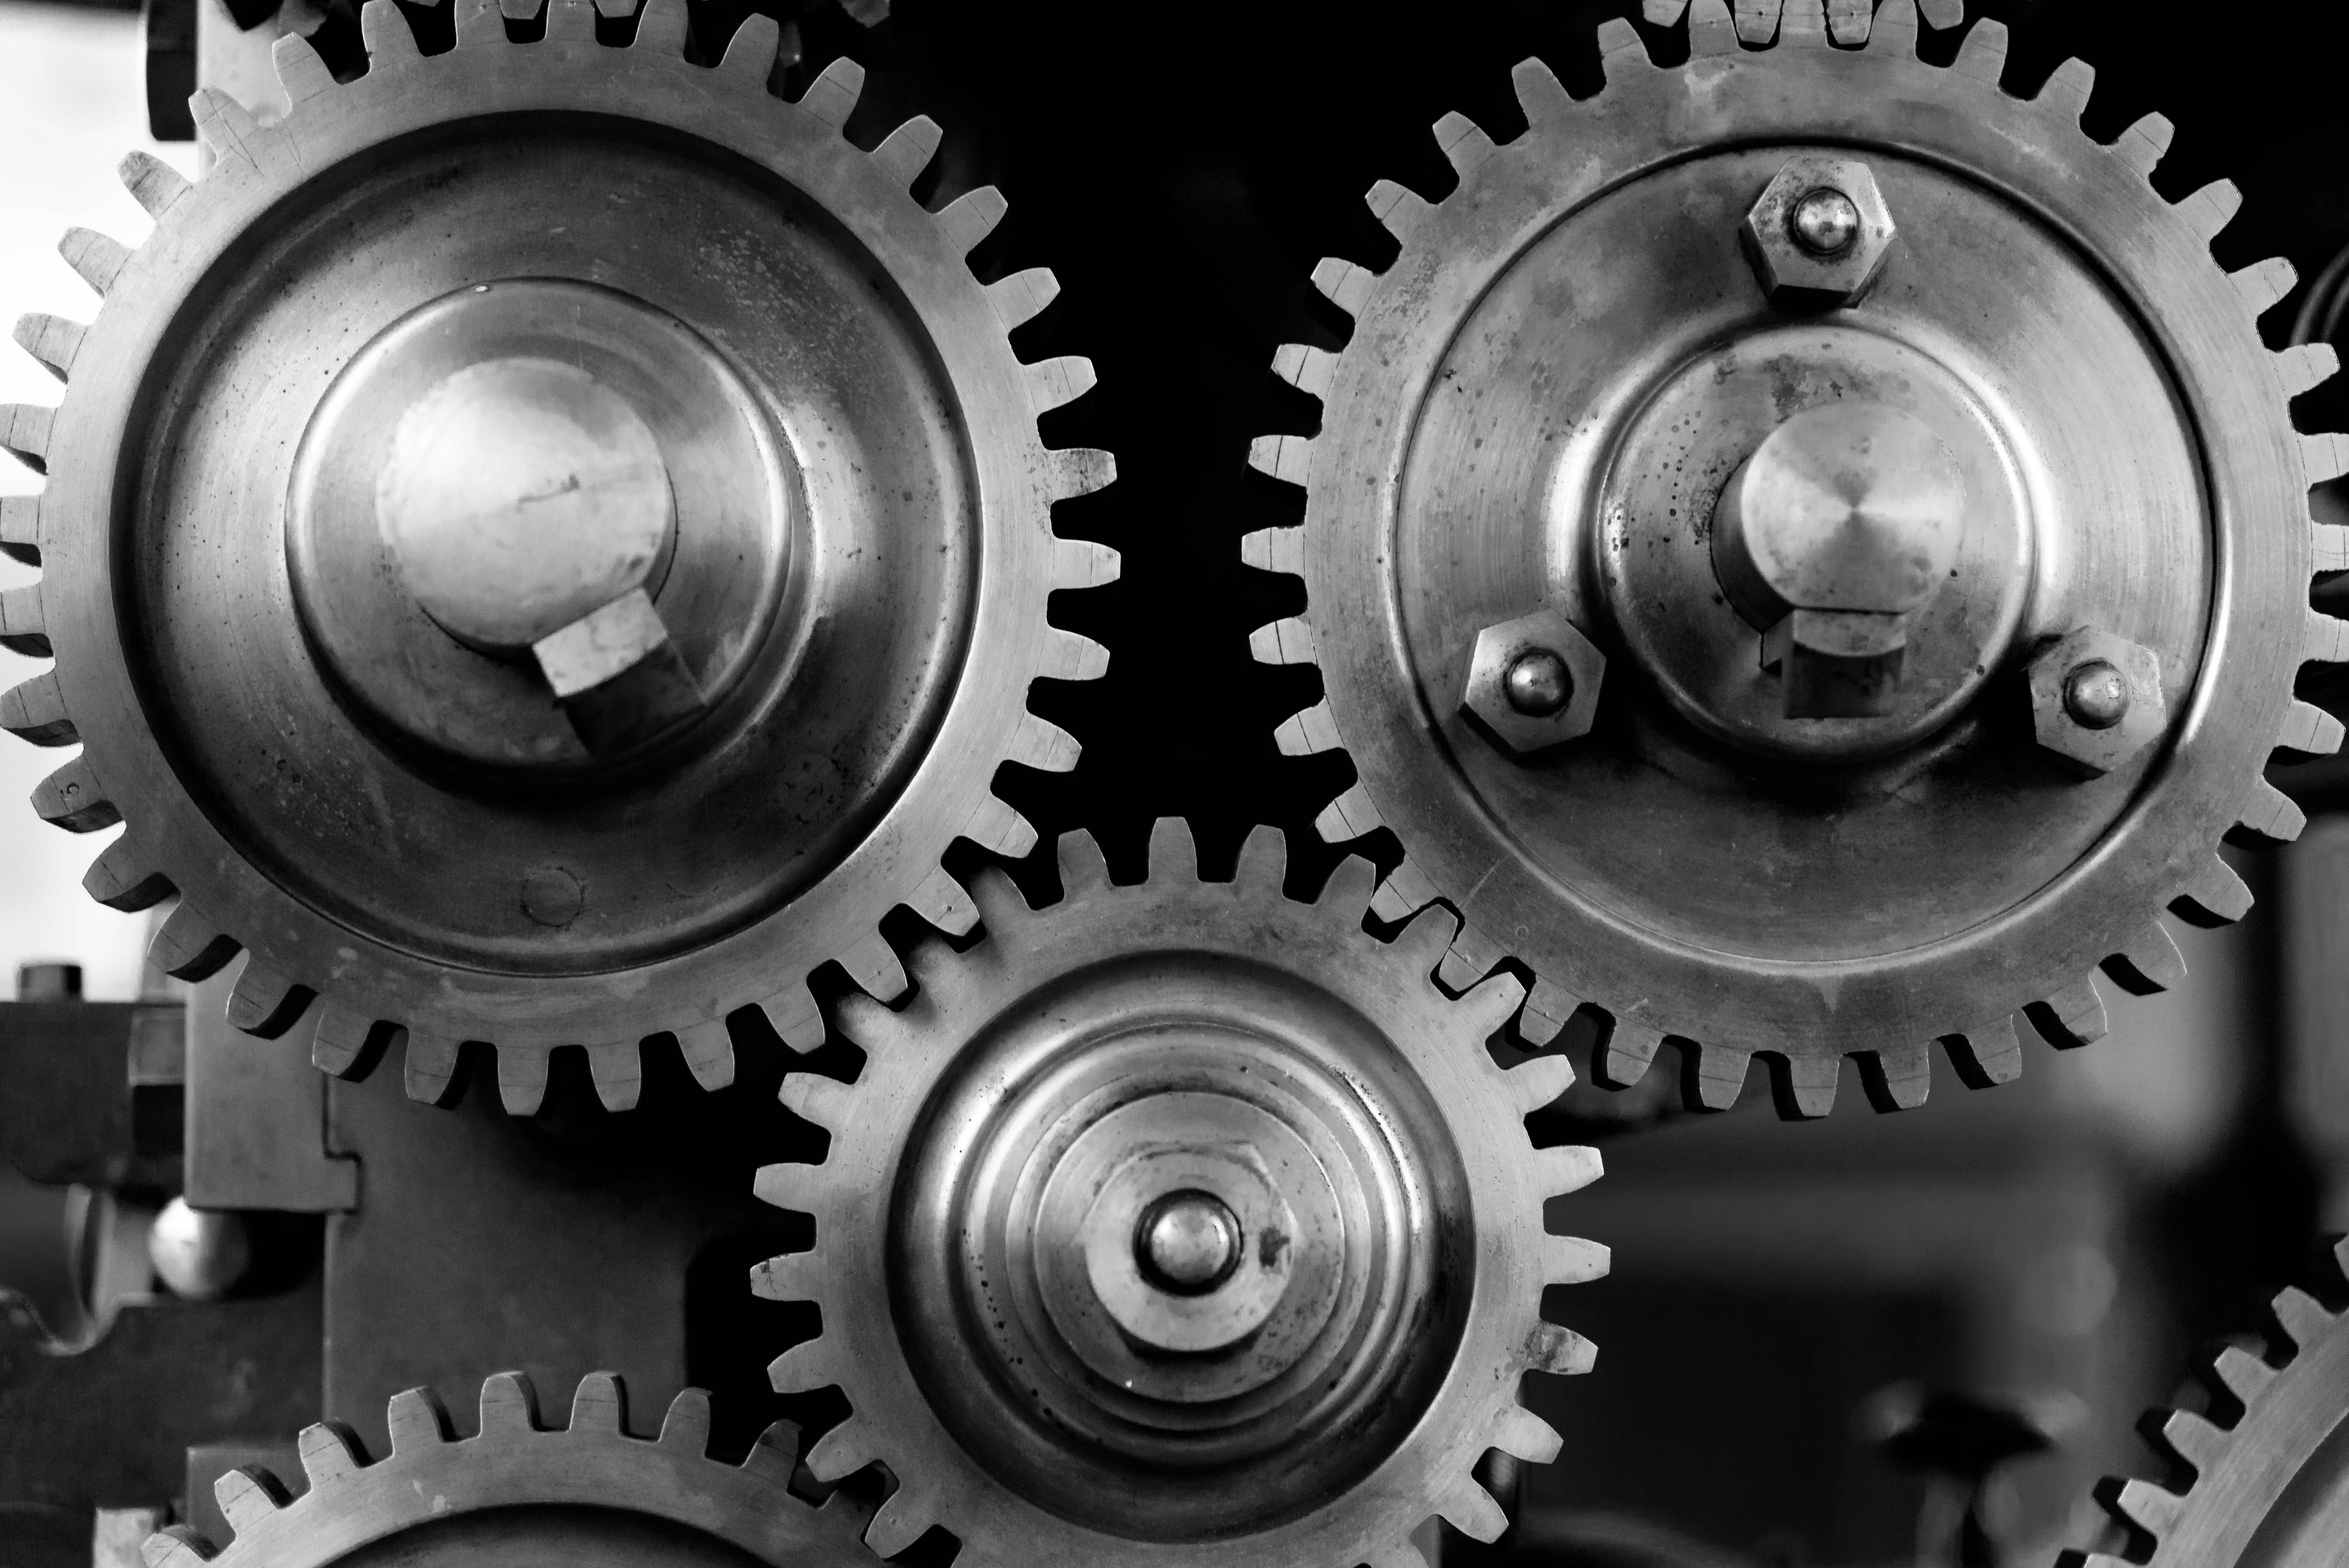 close-up-cogs-gears-149387